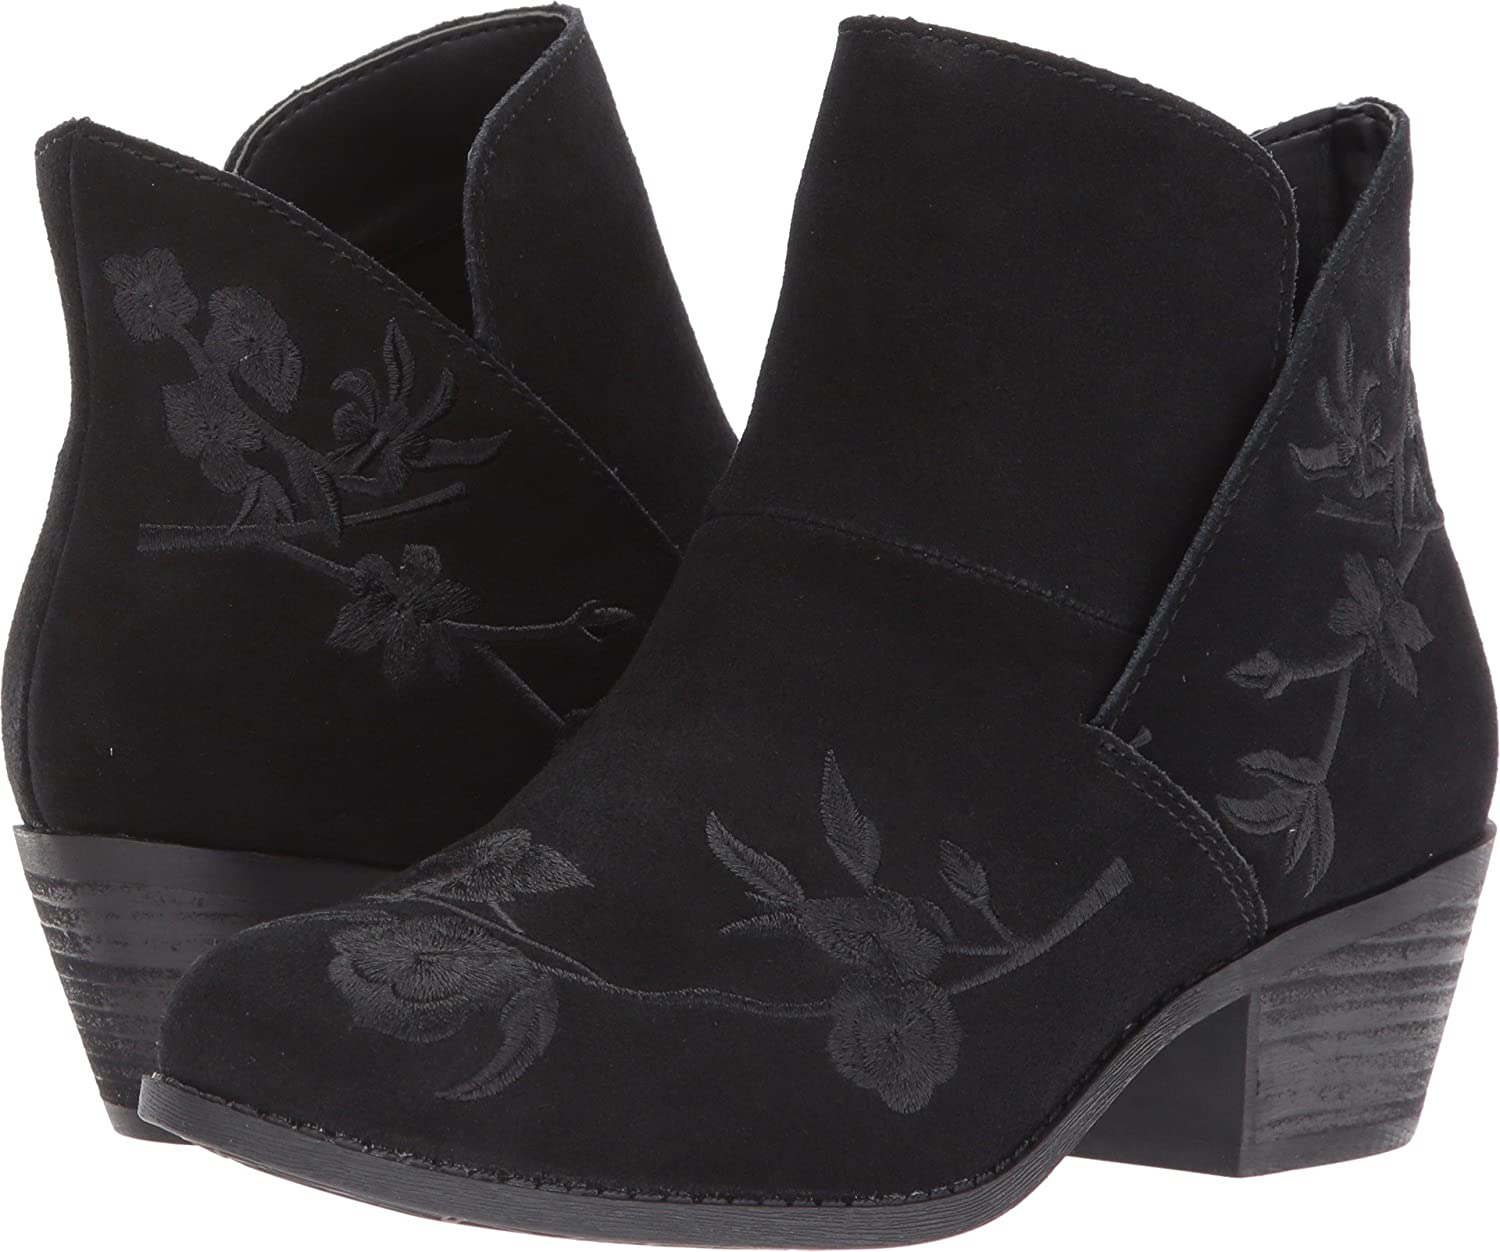 Me Too Womens zena14 Suede Almond Toe Ankle Fashion Boots B0711YLVHS 8.5 B(M) US|Black Floral Suede